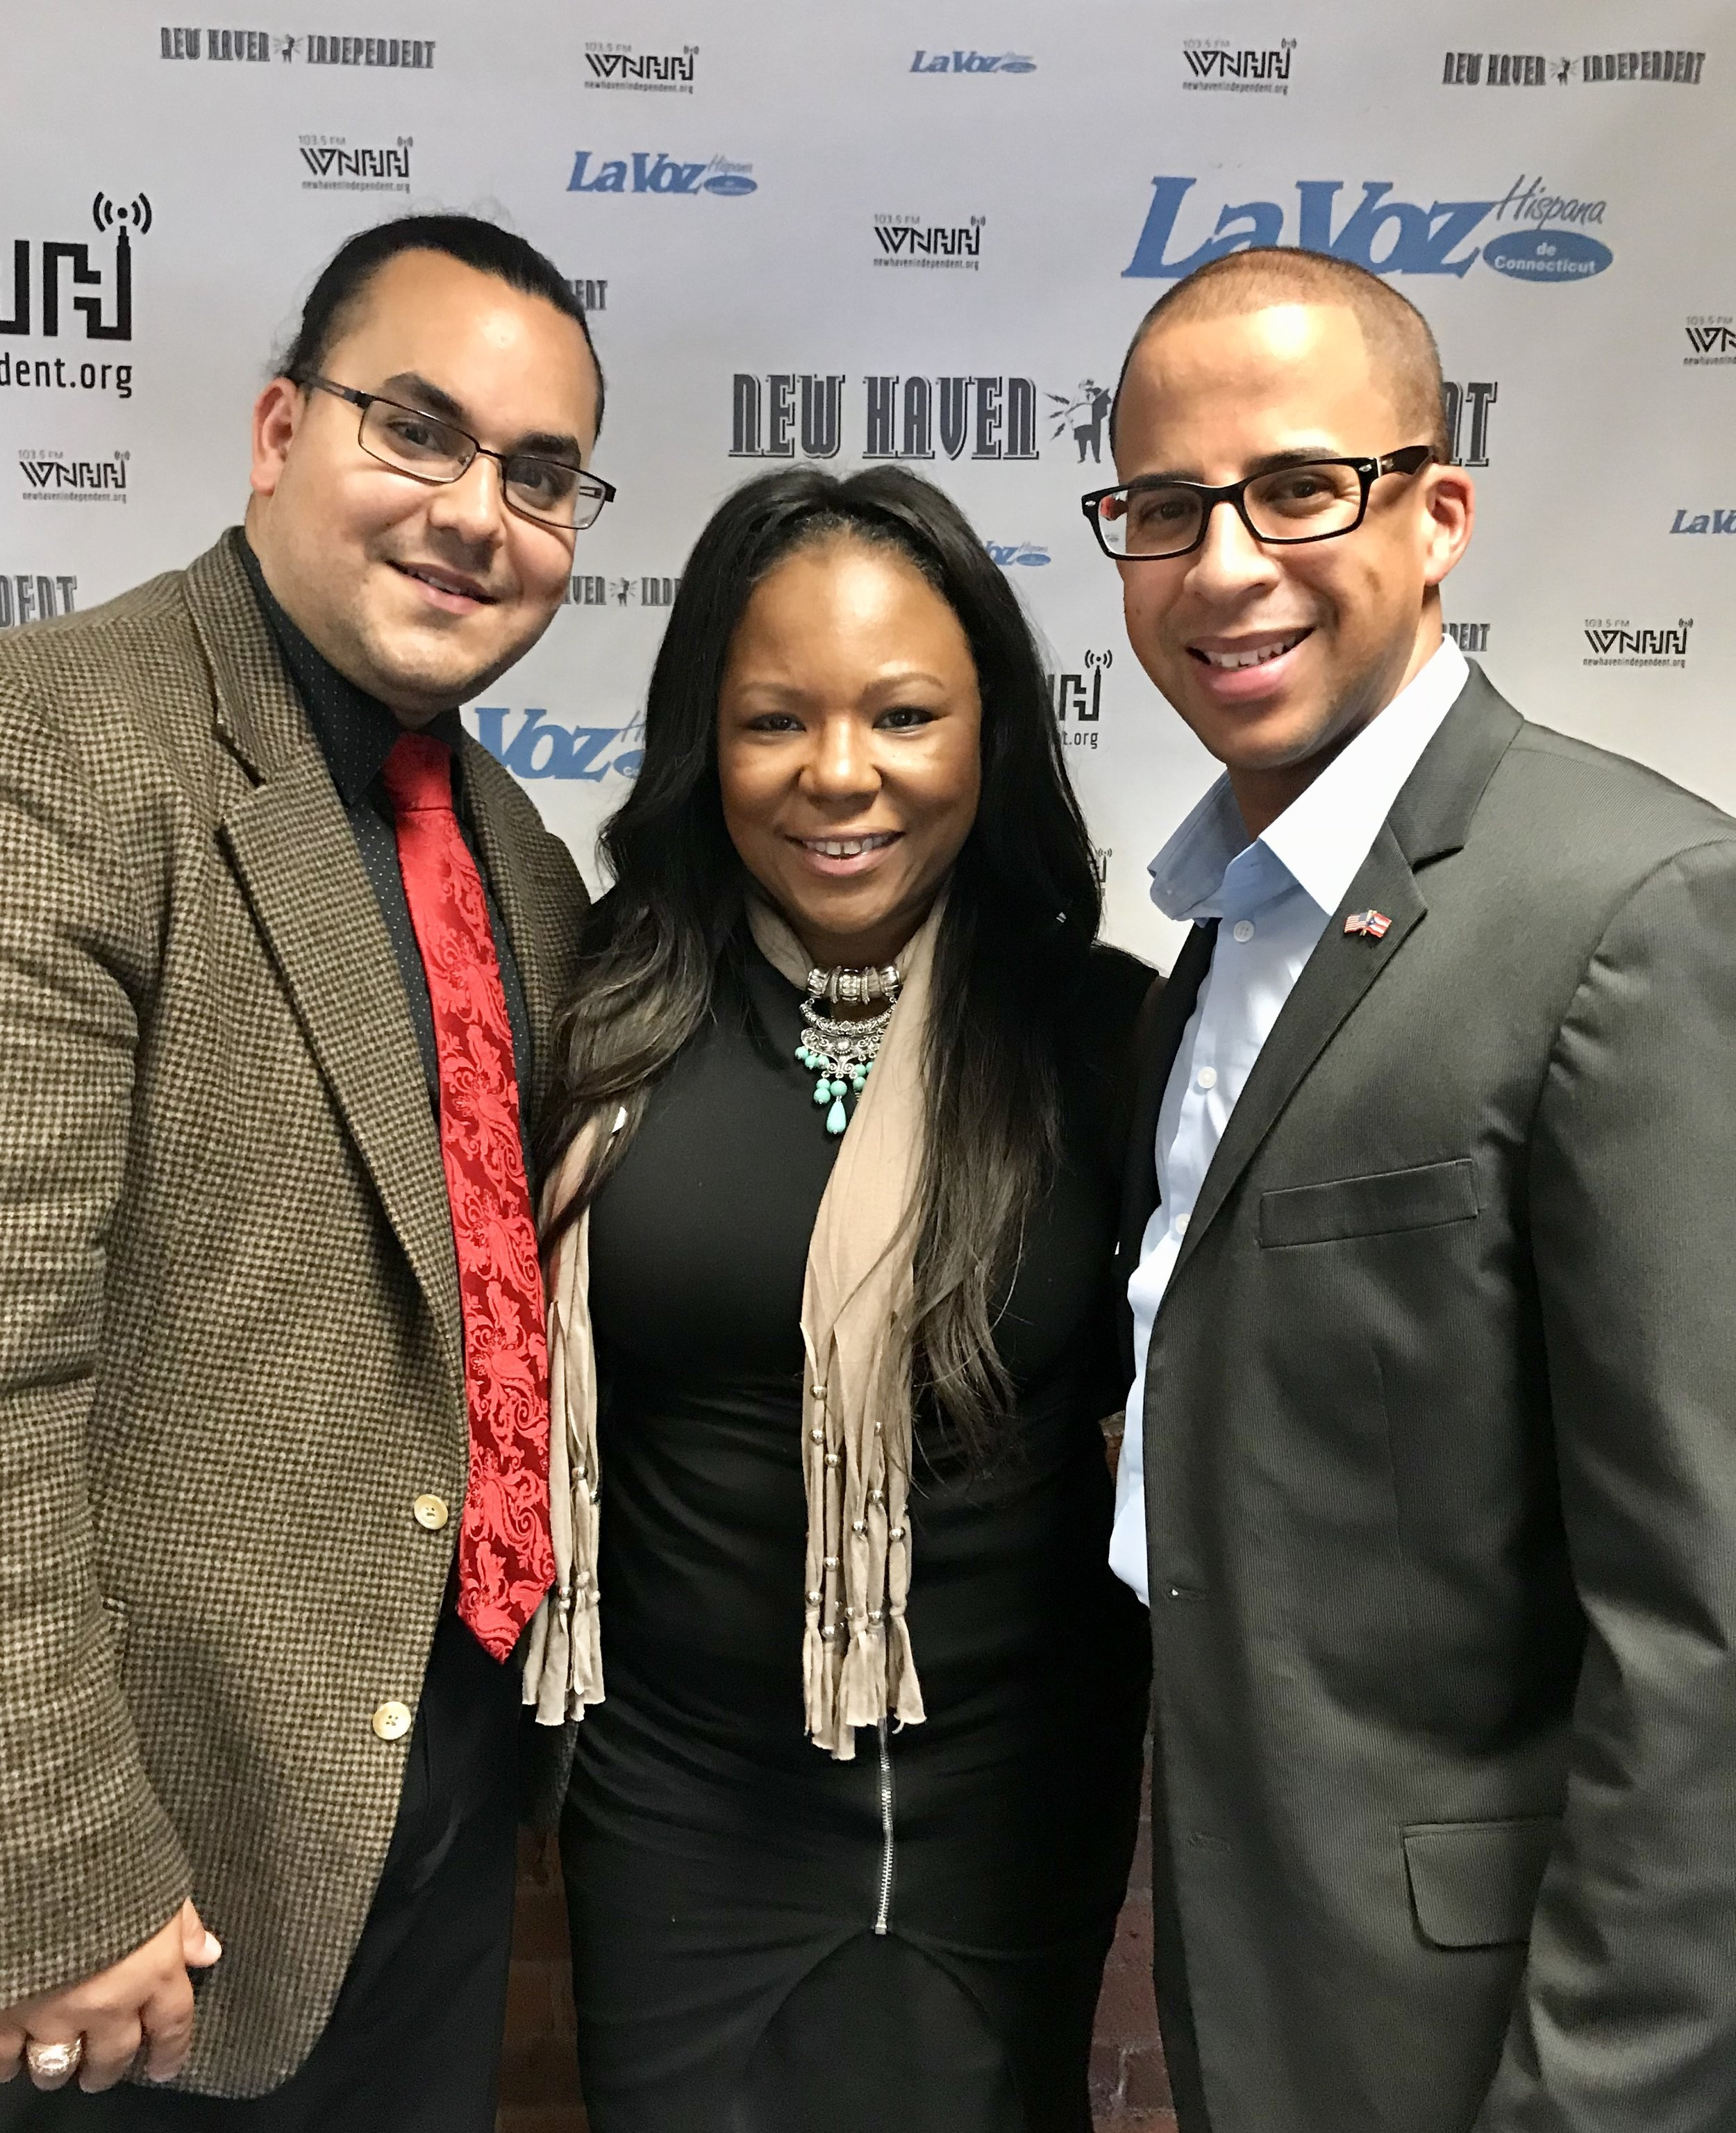 Host Alisa Bowens-Mercado speaks with Jhonathan Rivera (New Haven for Puerto Rico) and Jose Crespo (Alderman Ward 16). They talk about how New Haven is organizing to Help Puerto Rico!